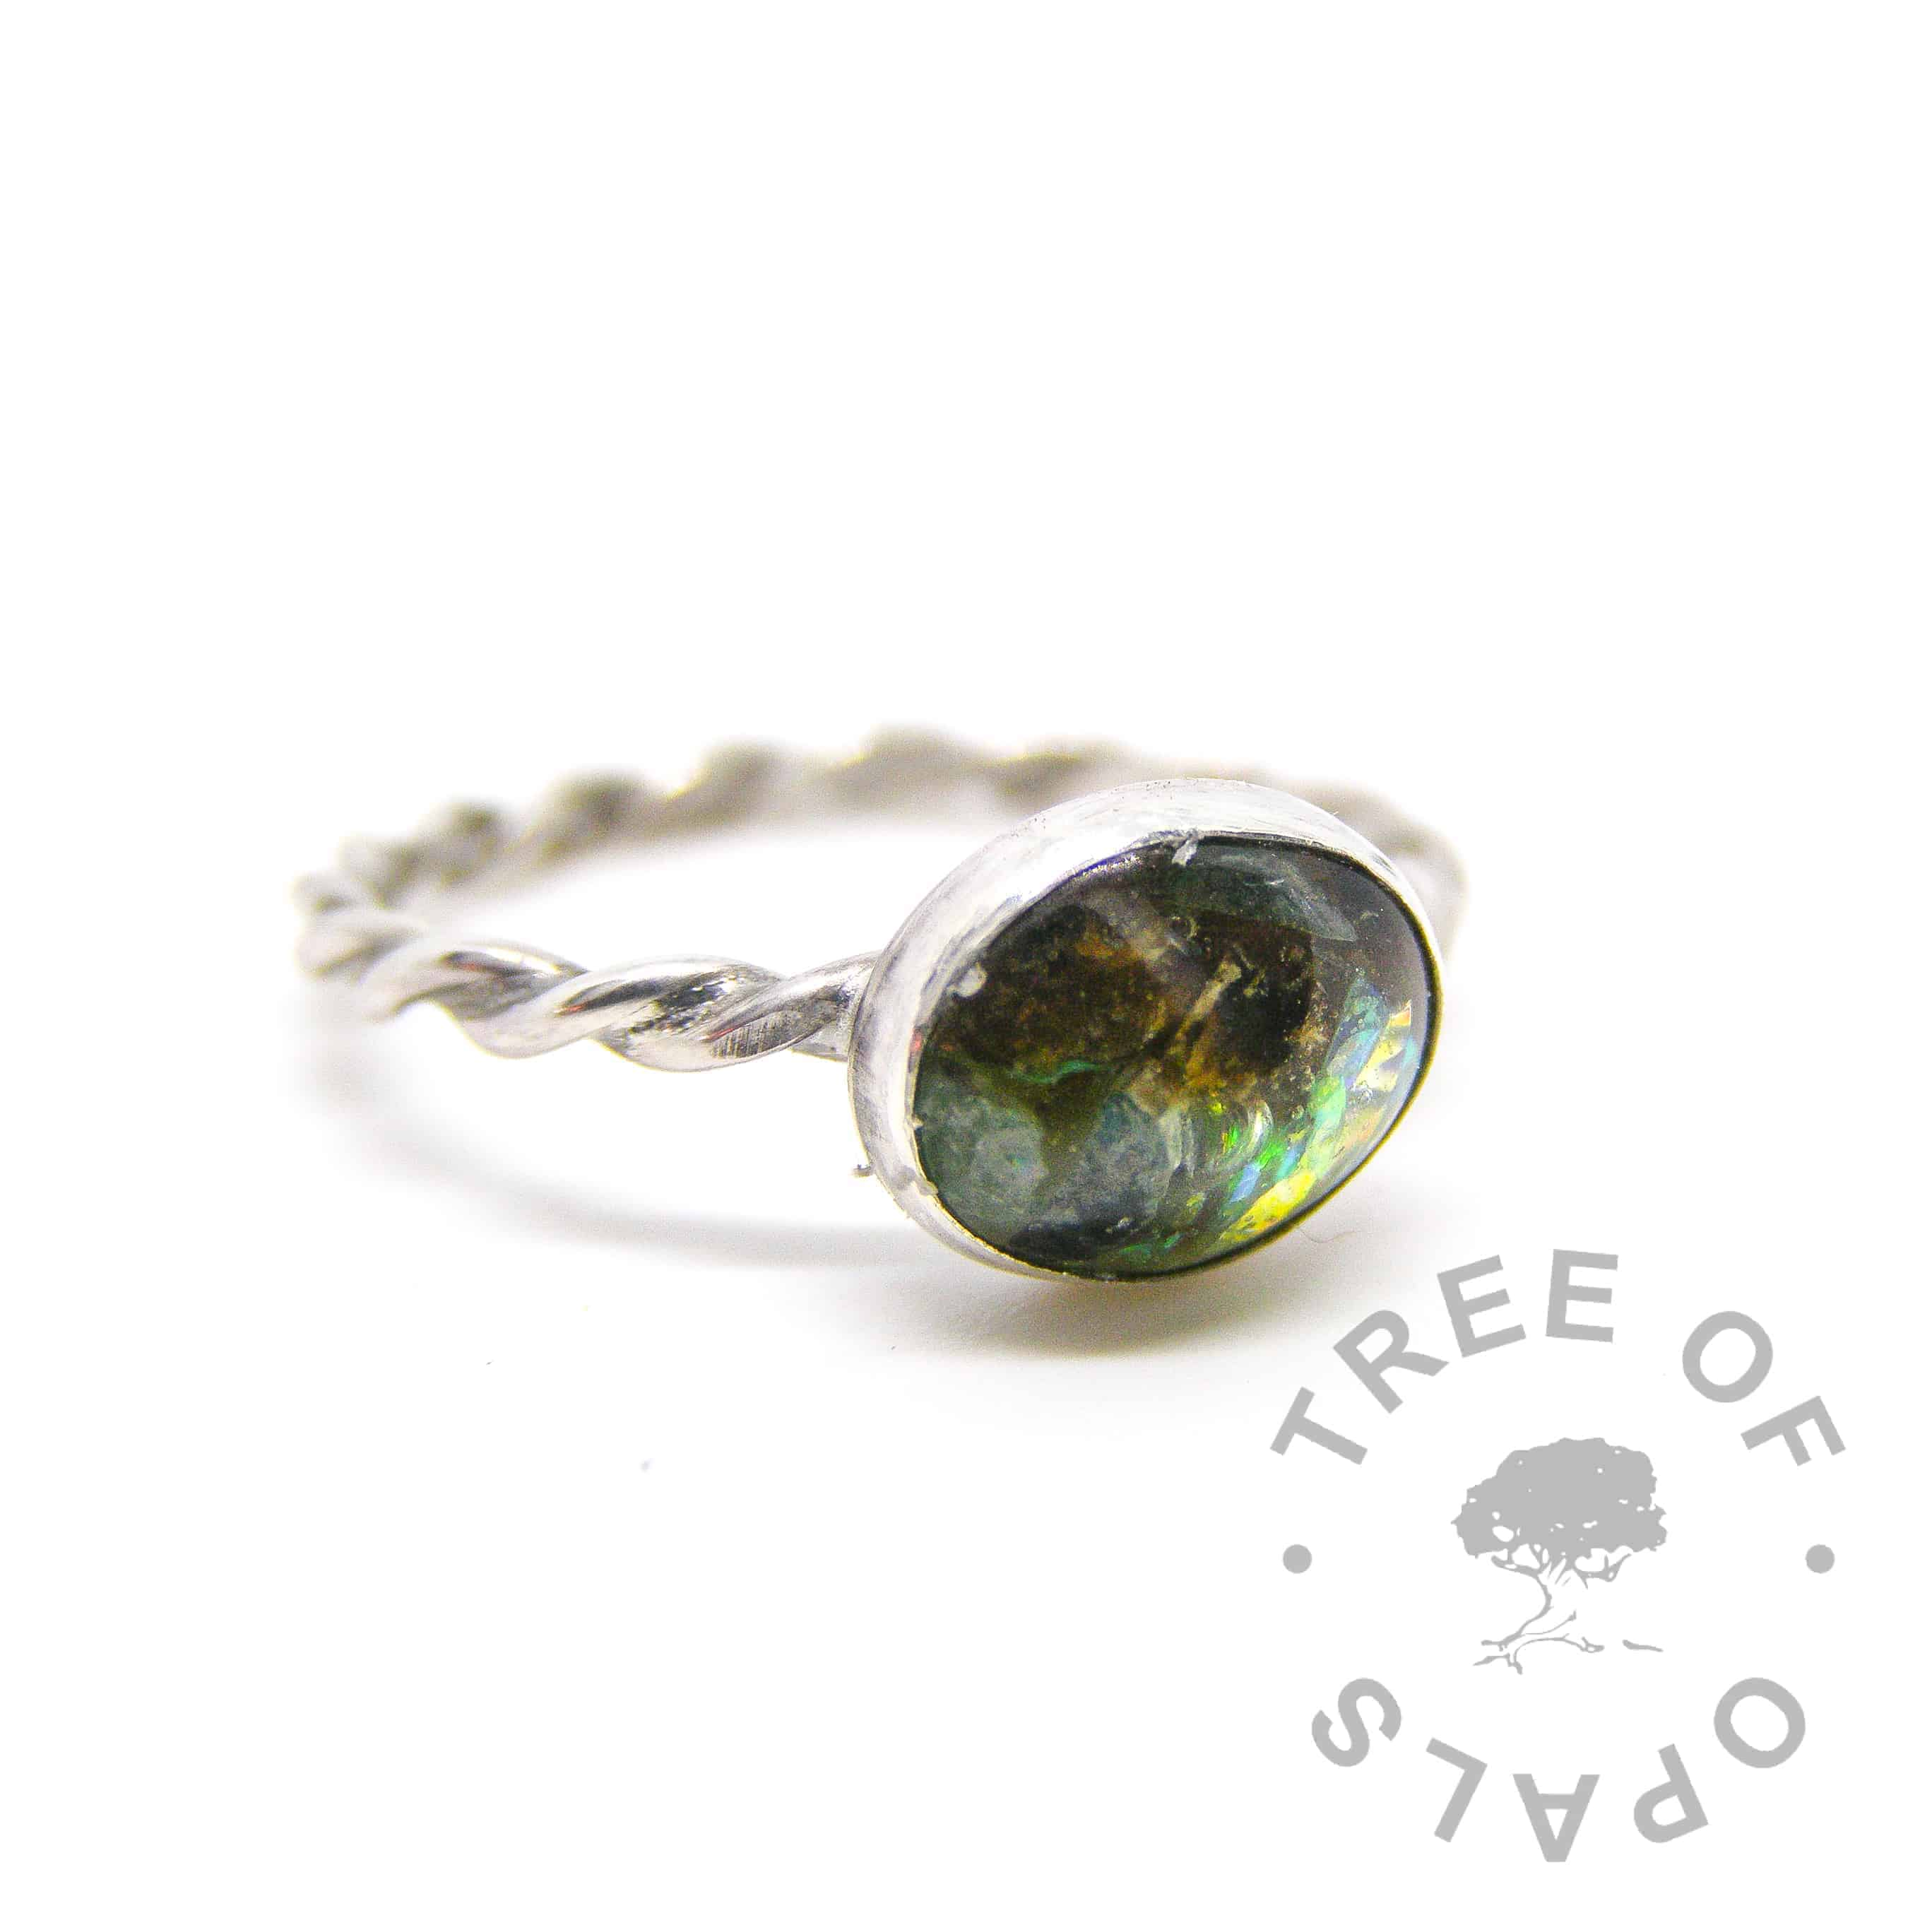 cremation ash ring with peridot and basilisk green colour mix on twisted wire band